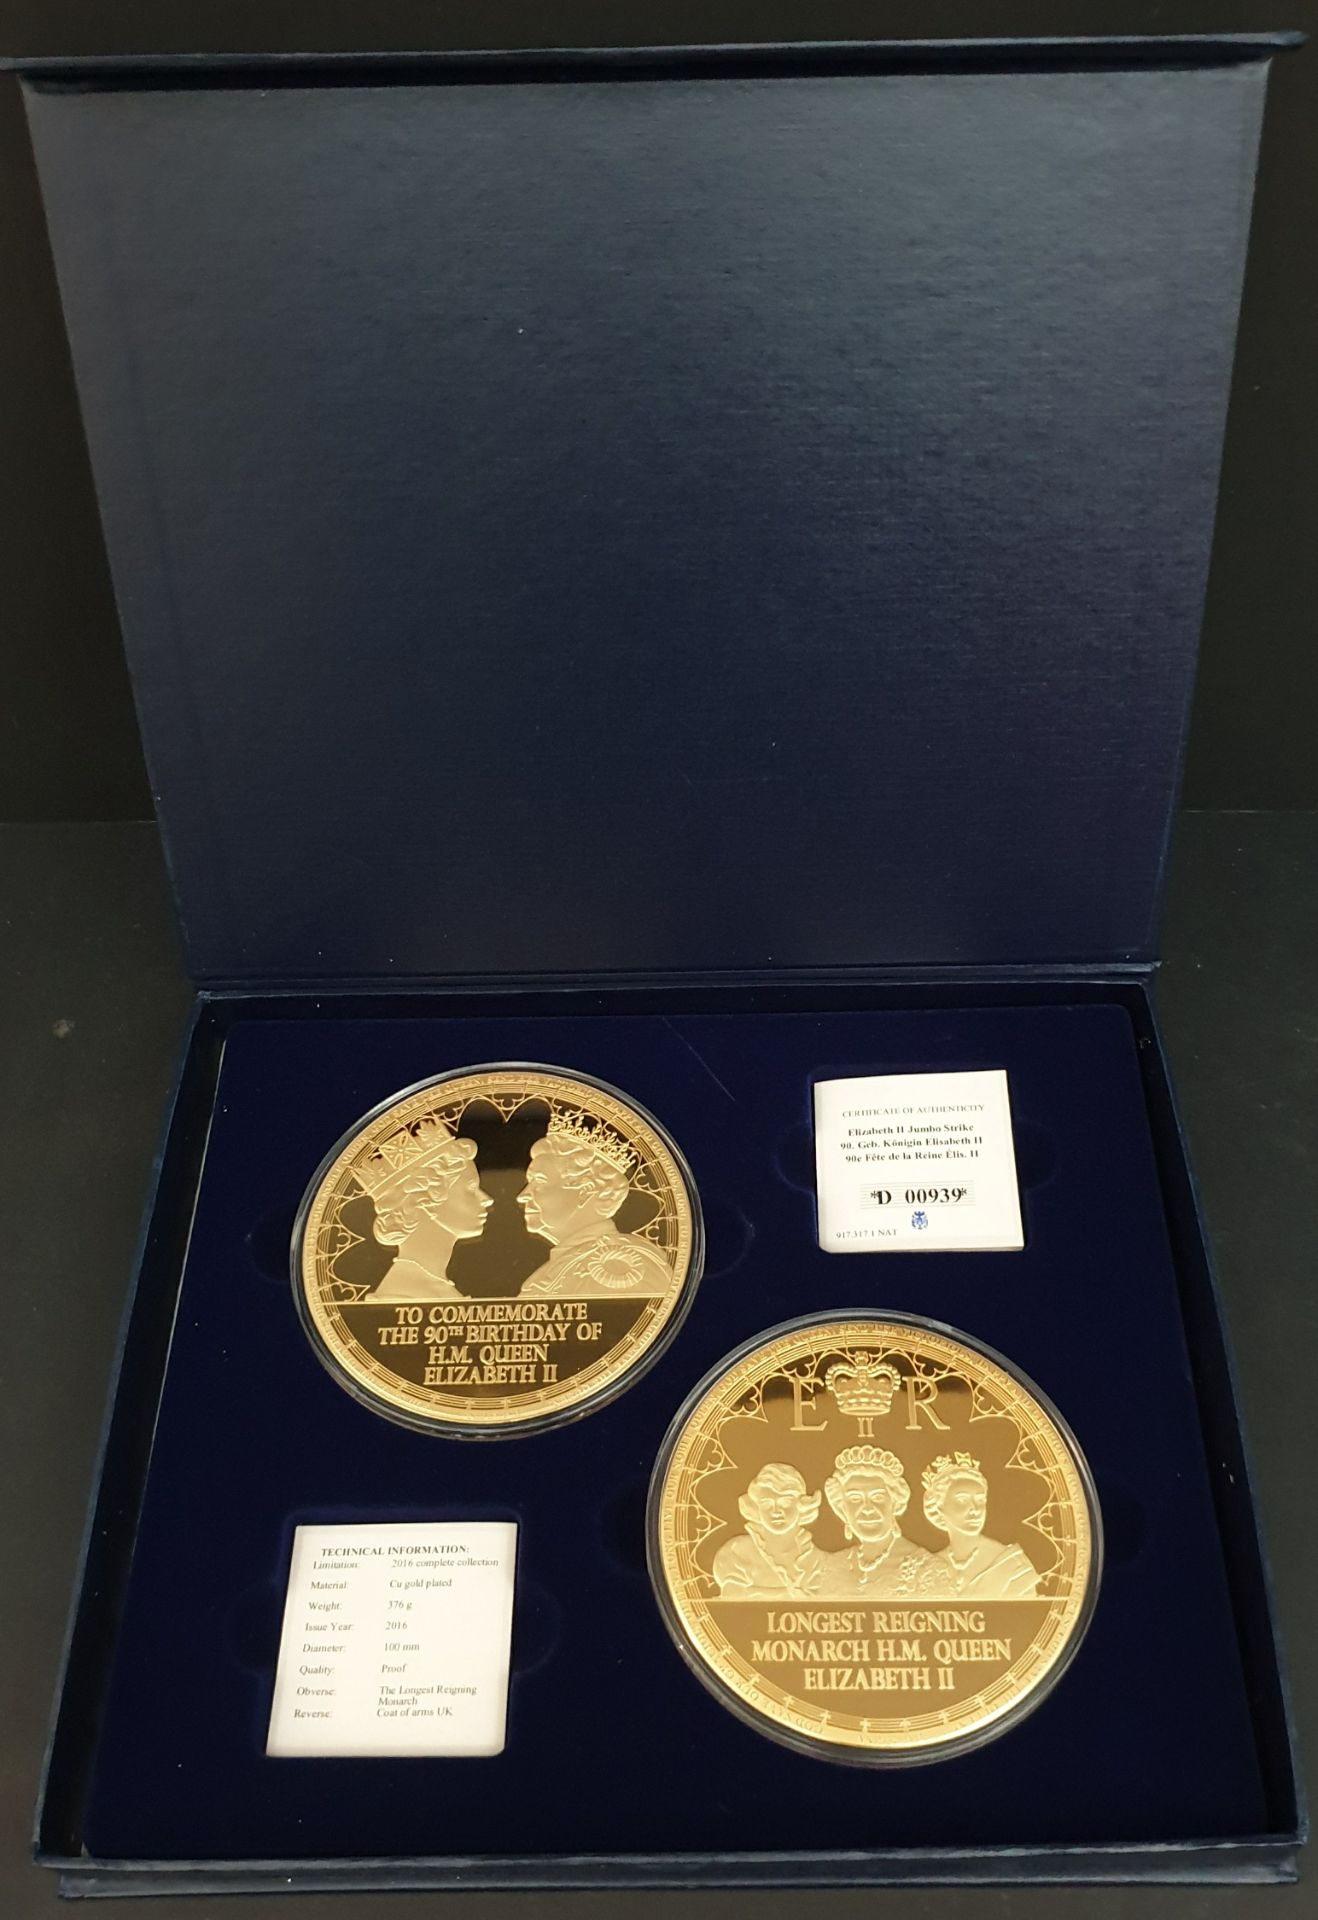 Lot 18 - Collectable Coins 90th Birthday of H.M. Queen Elizabeth II